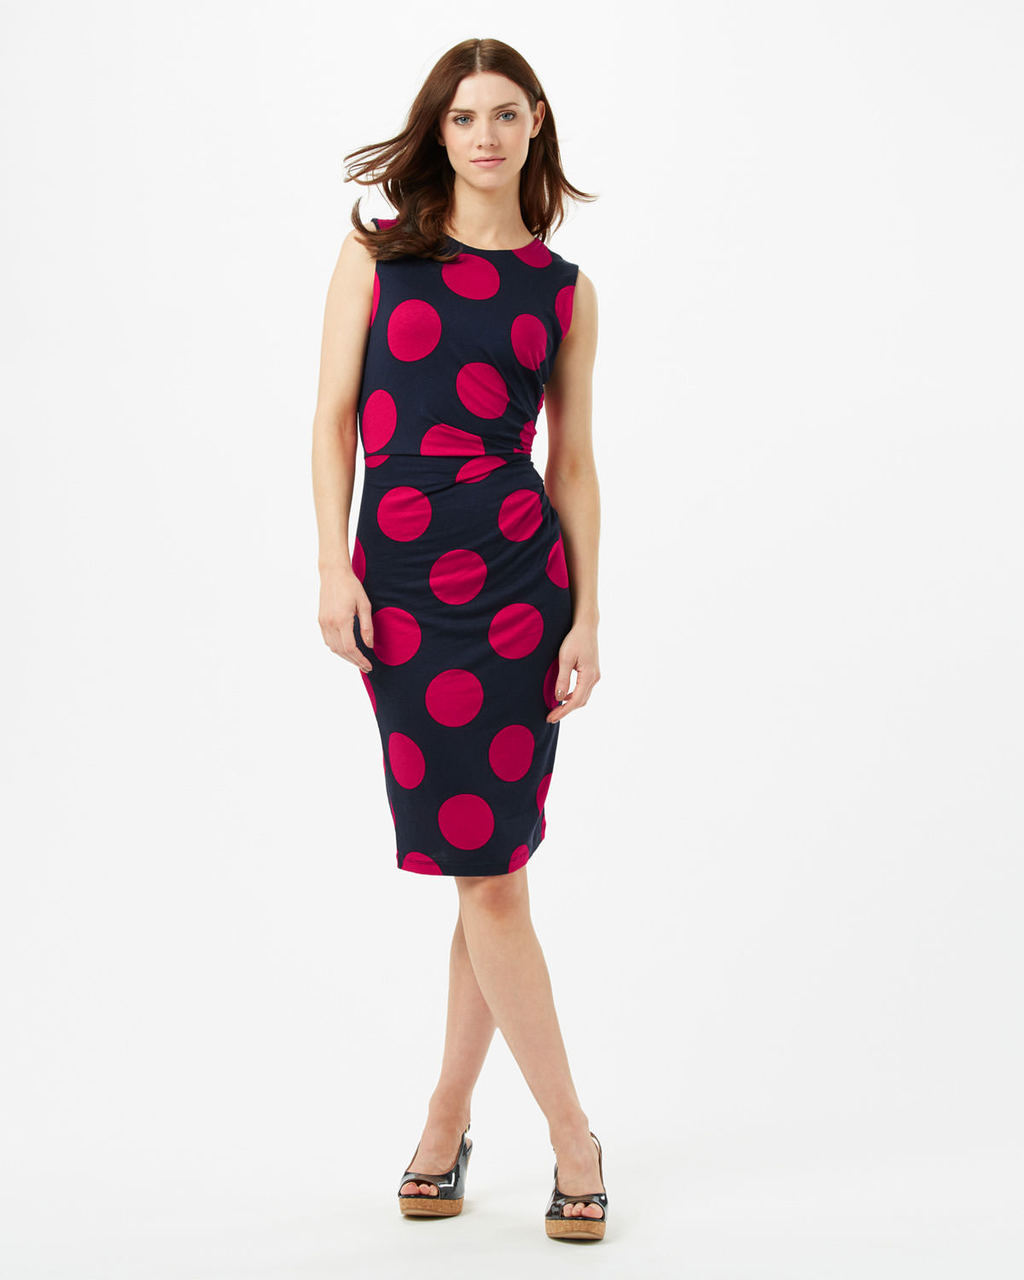 Anna Spot Dress - style: shift; fit: tight; sleeve style: sleeveless; pattern: polka dot; secondary colour: true red; predominant colour: navy; length: on the knee; fibres: viscose/rayon - stretch; occasions: occasion; neckline: crew; sleeve length: sleeveless; texture group: jersey - clingy; pattern type: fabric; pattern size: standard; season: s/s 2016; wardrobe: event